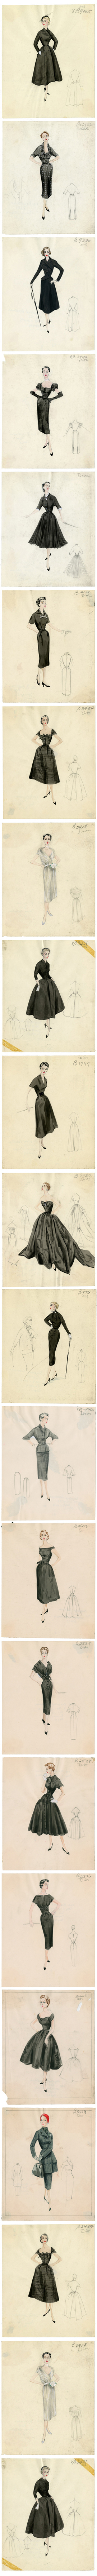 Dior, early 1950s, Bergdorf Custom Salon sketches